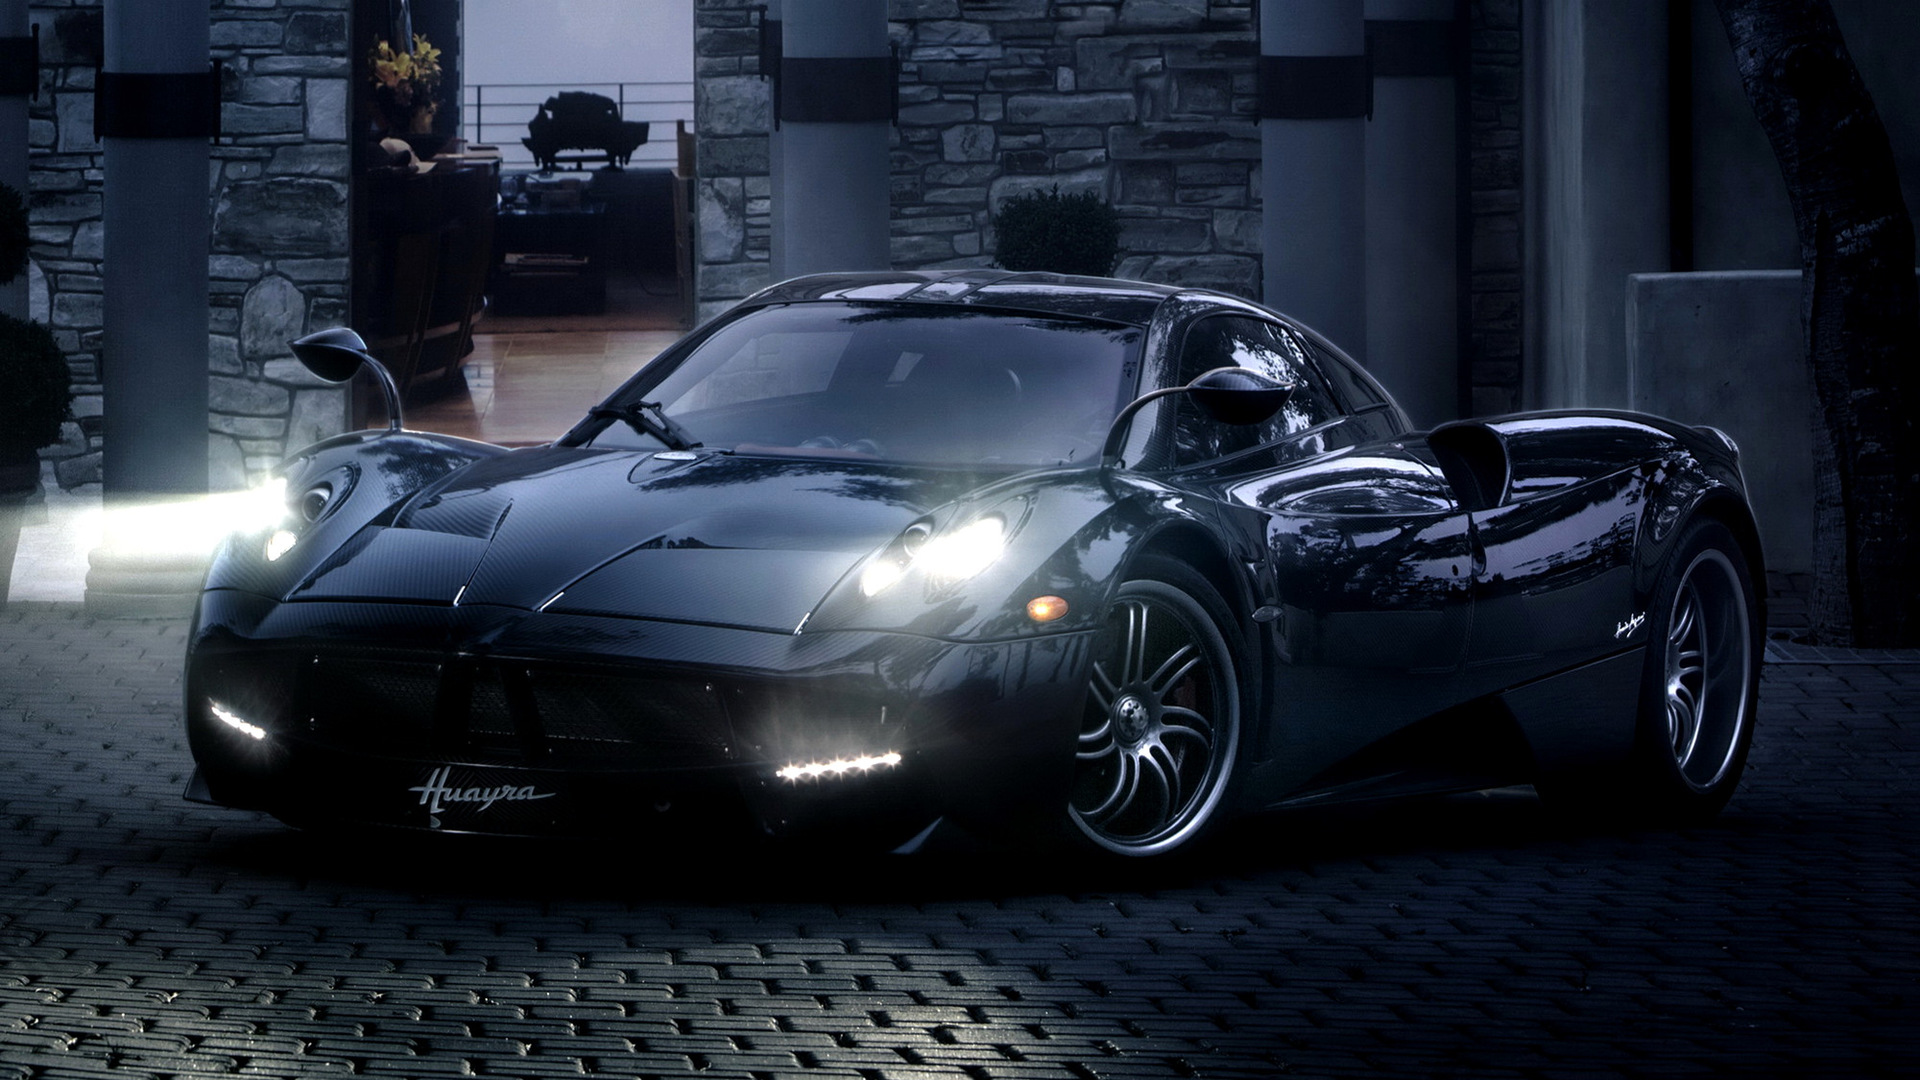 Pagani Huayra Hd Wallpaper 2013 Pagani Huayra Us Wallpapers And Hd Images Car Pixel